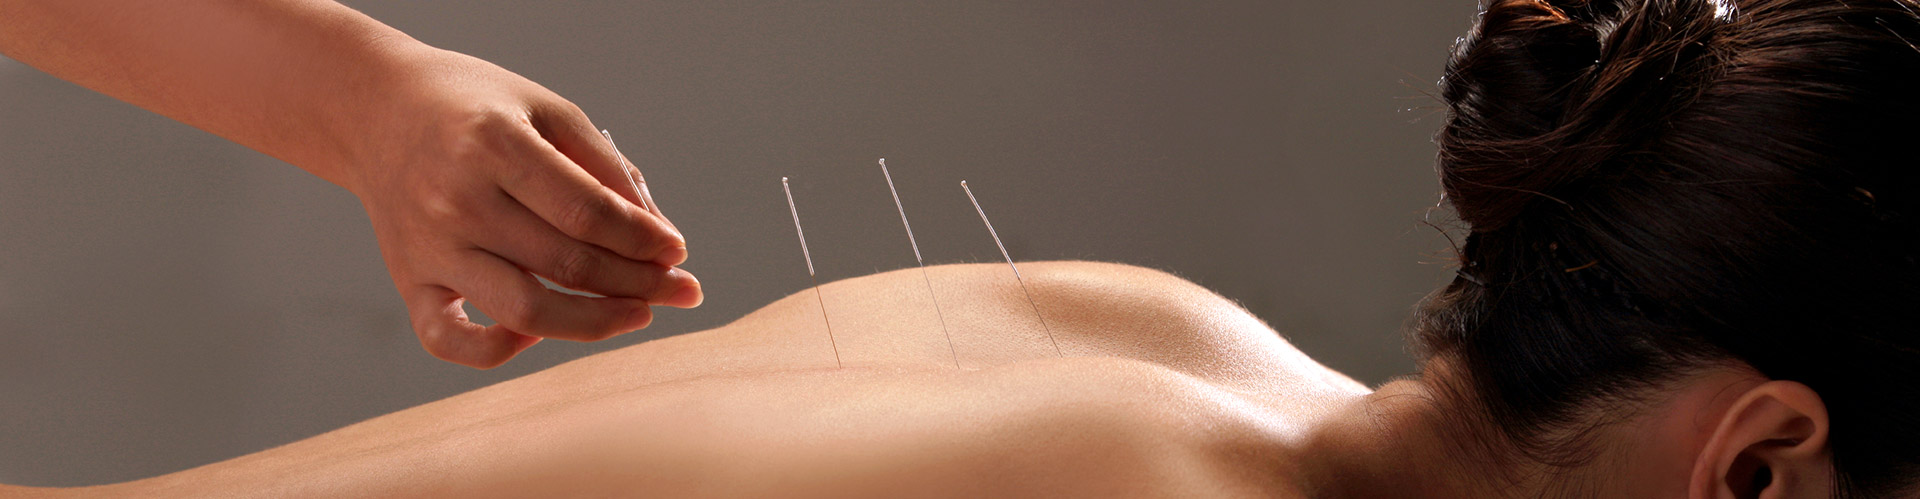 Acupuncture in Michigan